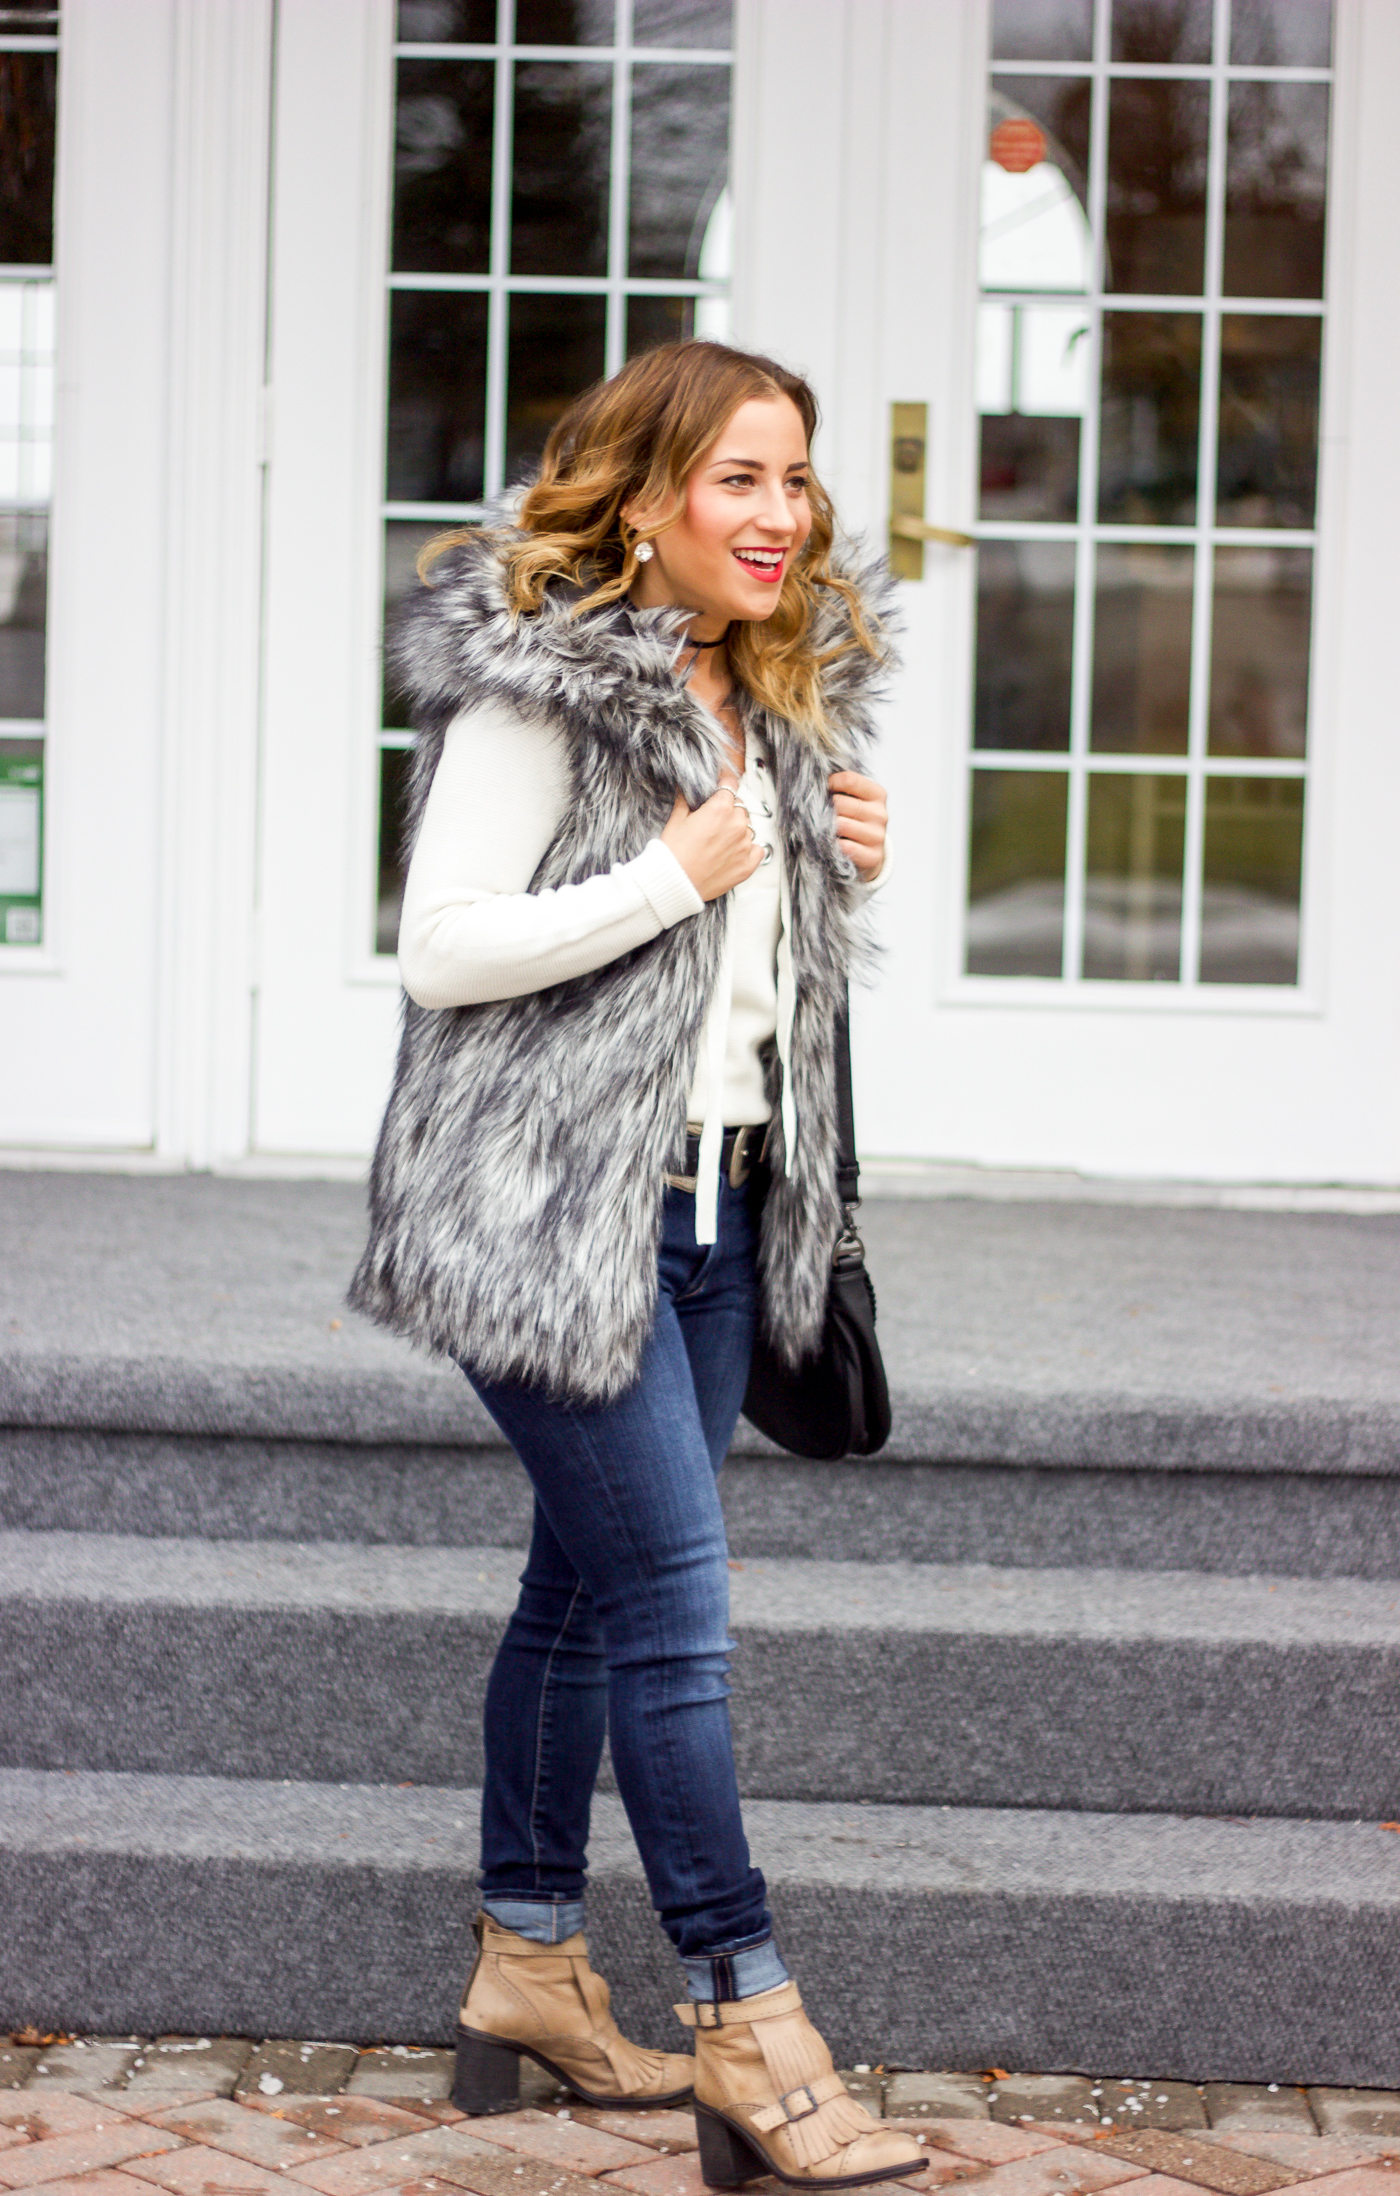 Canadian life and style blogger, Jackie Goldhar wearing a cozy winter outfit, with faux fur from Artizia and Fidelity denim jeans